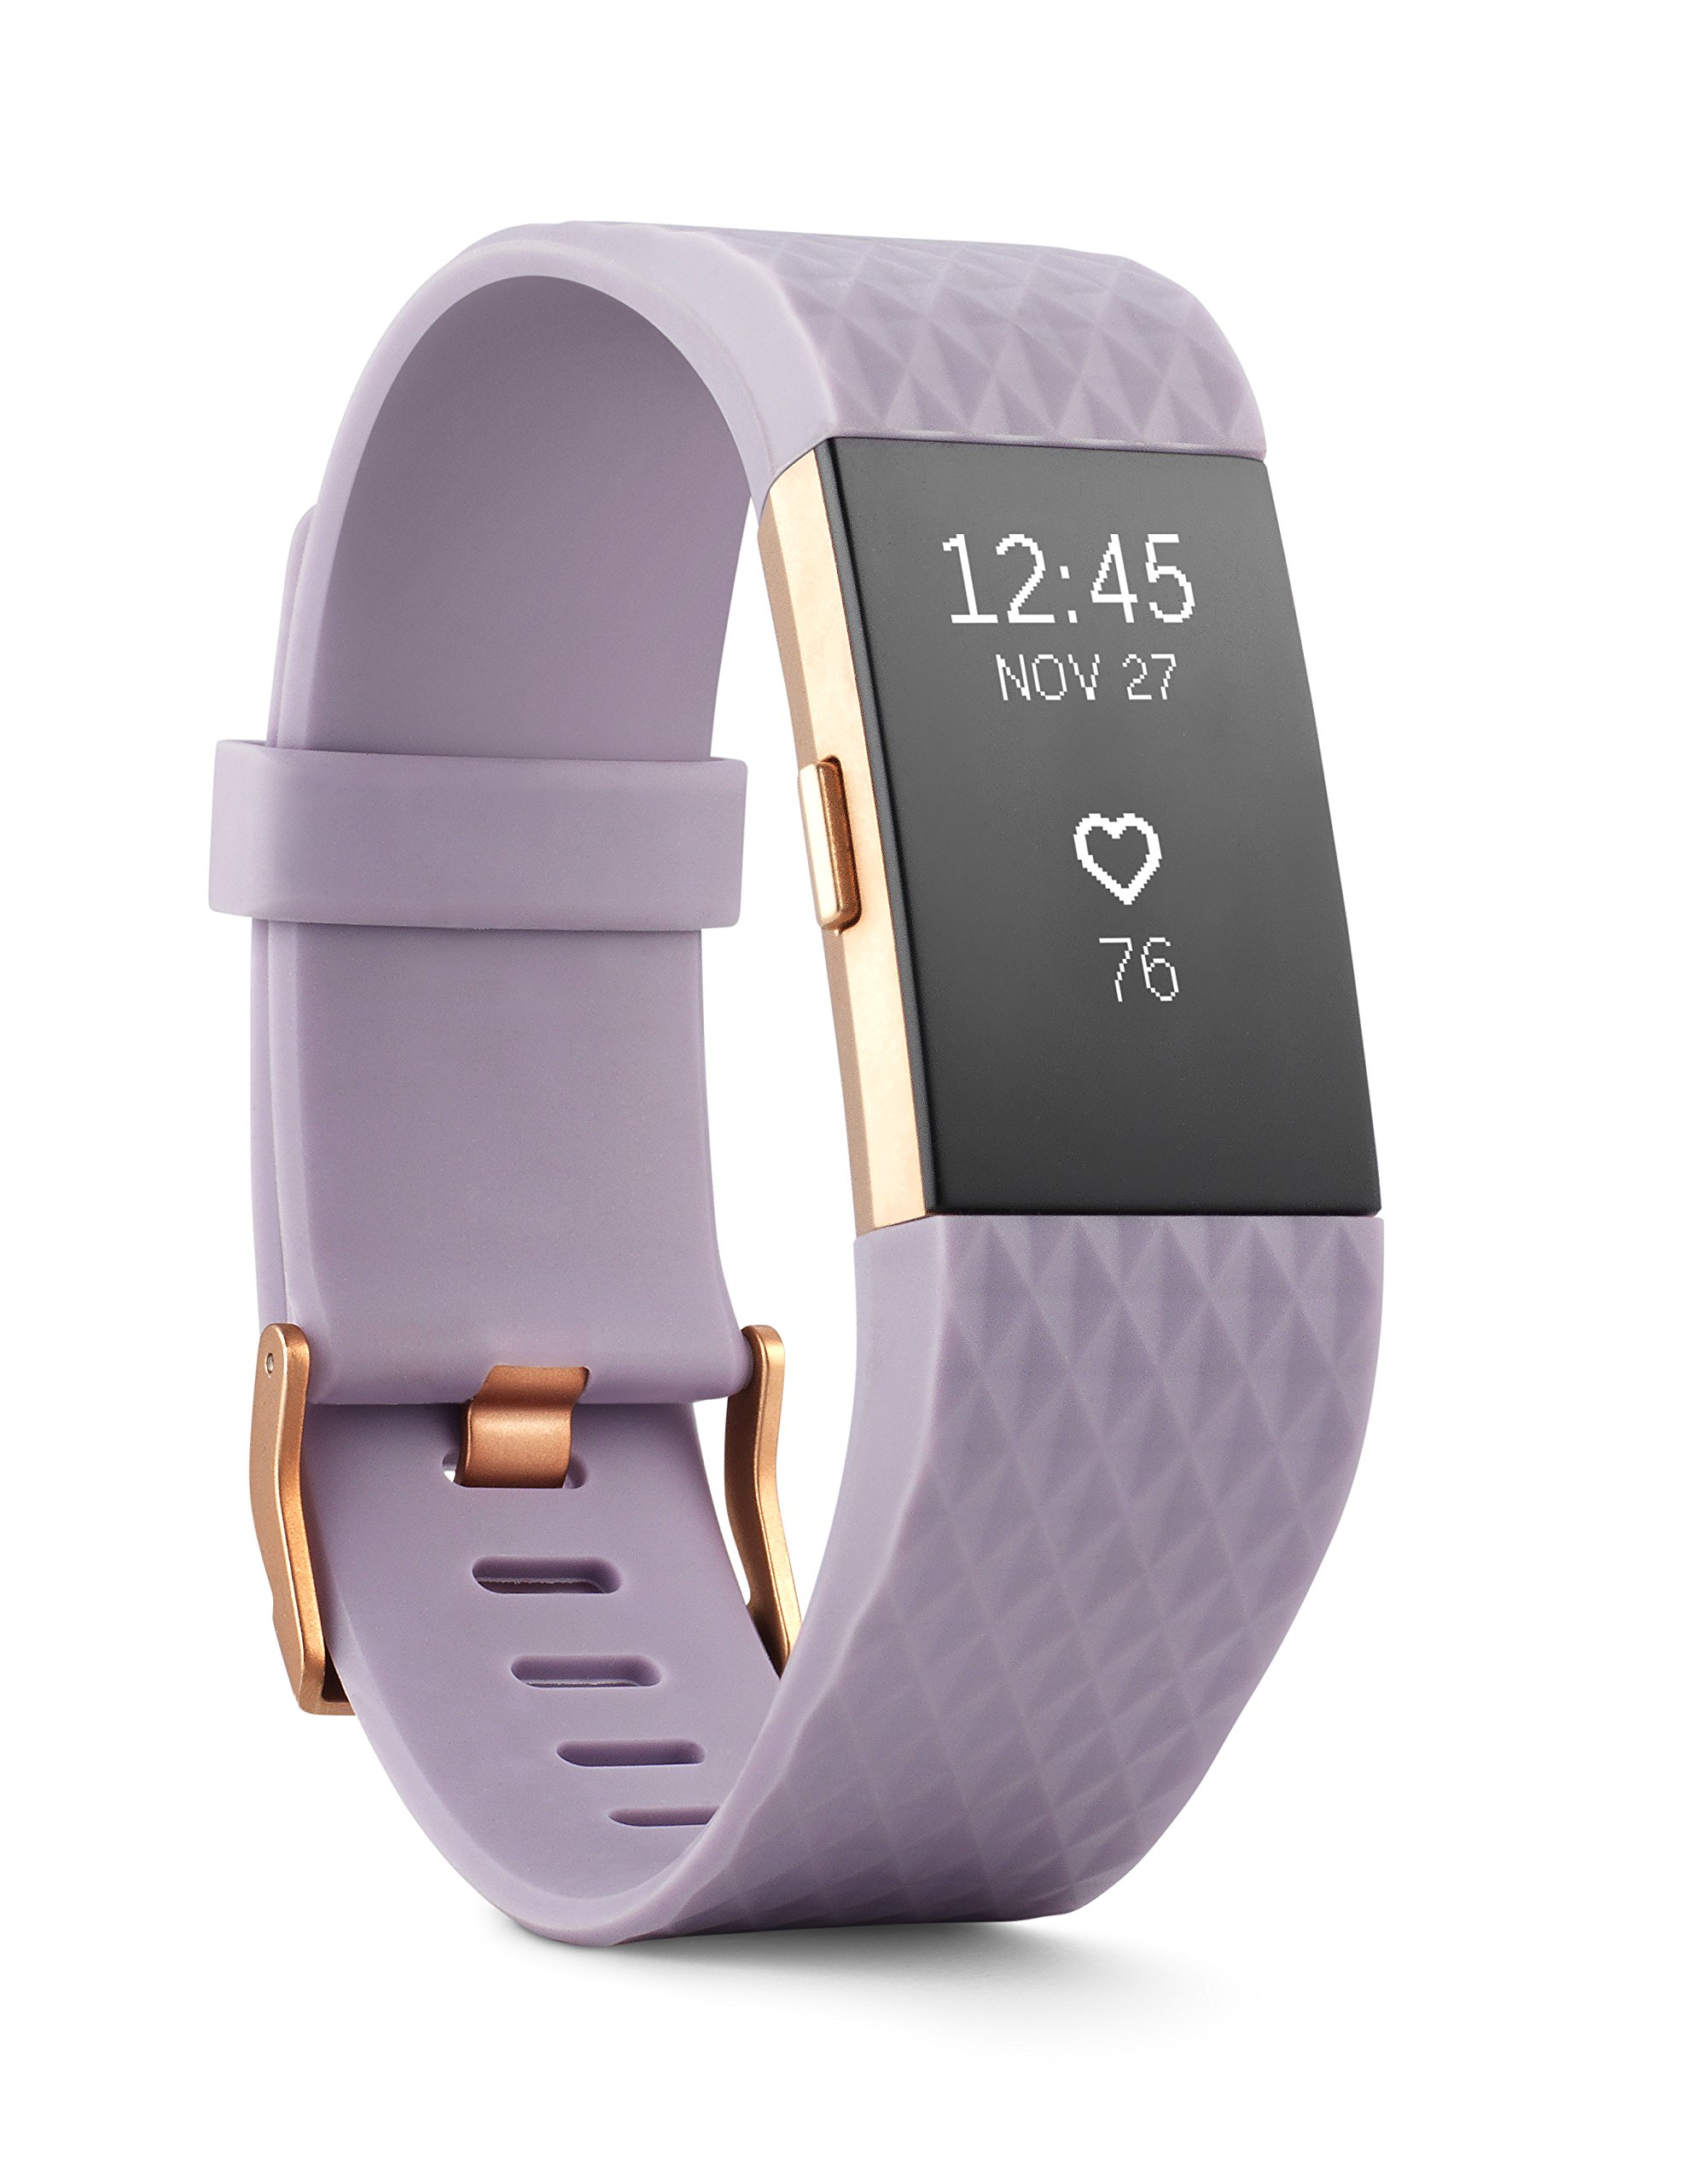 Fitbit Charge 2 Heart Rate + Fitness Wristband, Special Edition, Lavender Rose Gold, Small (US Version)